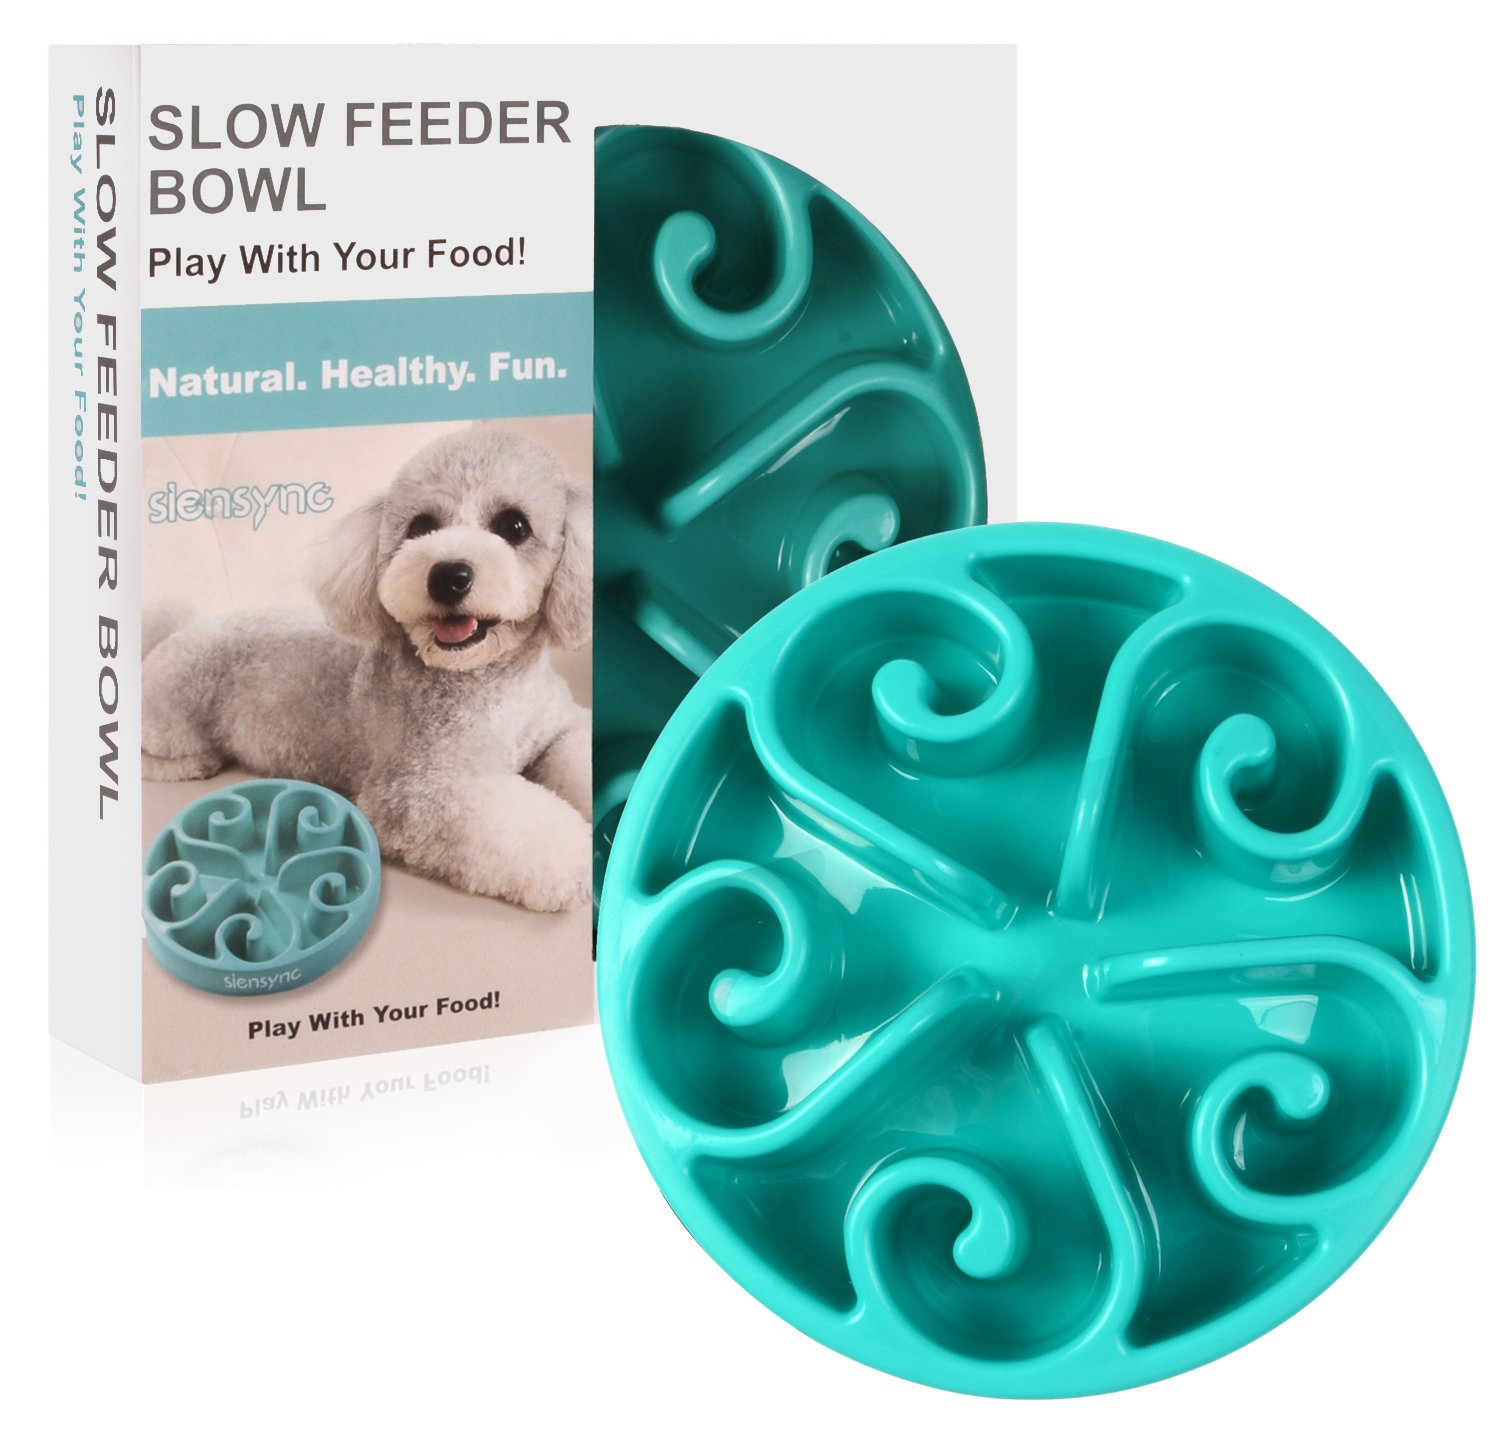 Siensync Slow Feeder Dog Bowl, NON SLIP Puzzle Bowl Fun Feeder Interactive Bloat Stop Dog Bowl, Eco-friendly Non Toxic Bamboo Fiber Slo Slow Feed Dog Bowl for large medium small dogs